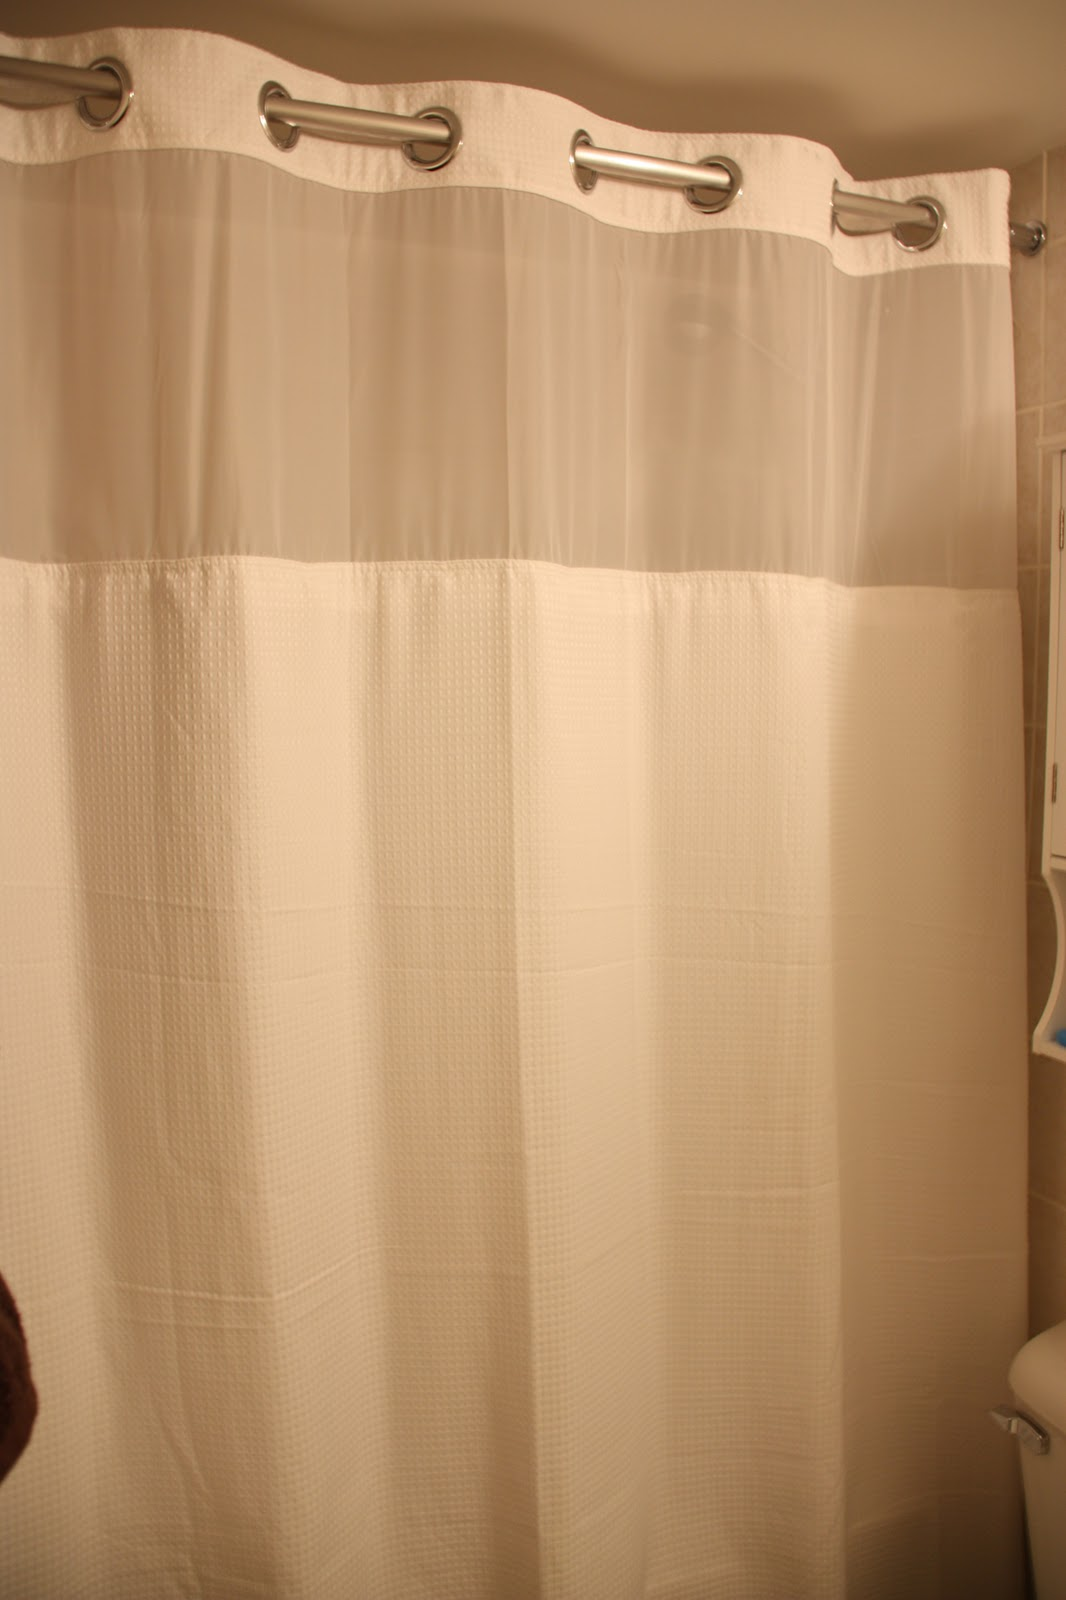 The Curtain Outer Layer Falls On Outside Of Bath Tub And It Has A Second Liner That Inside Is Snapped Onto